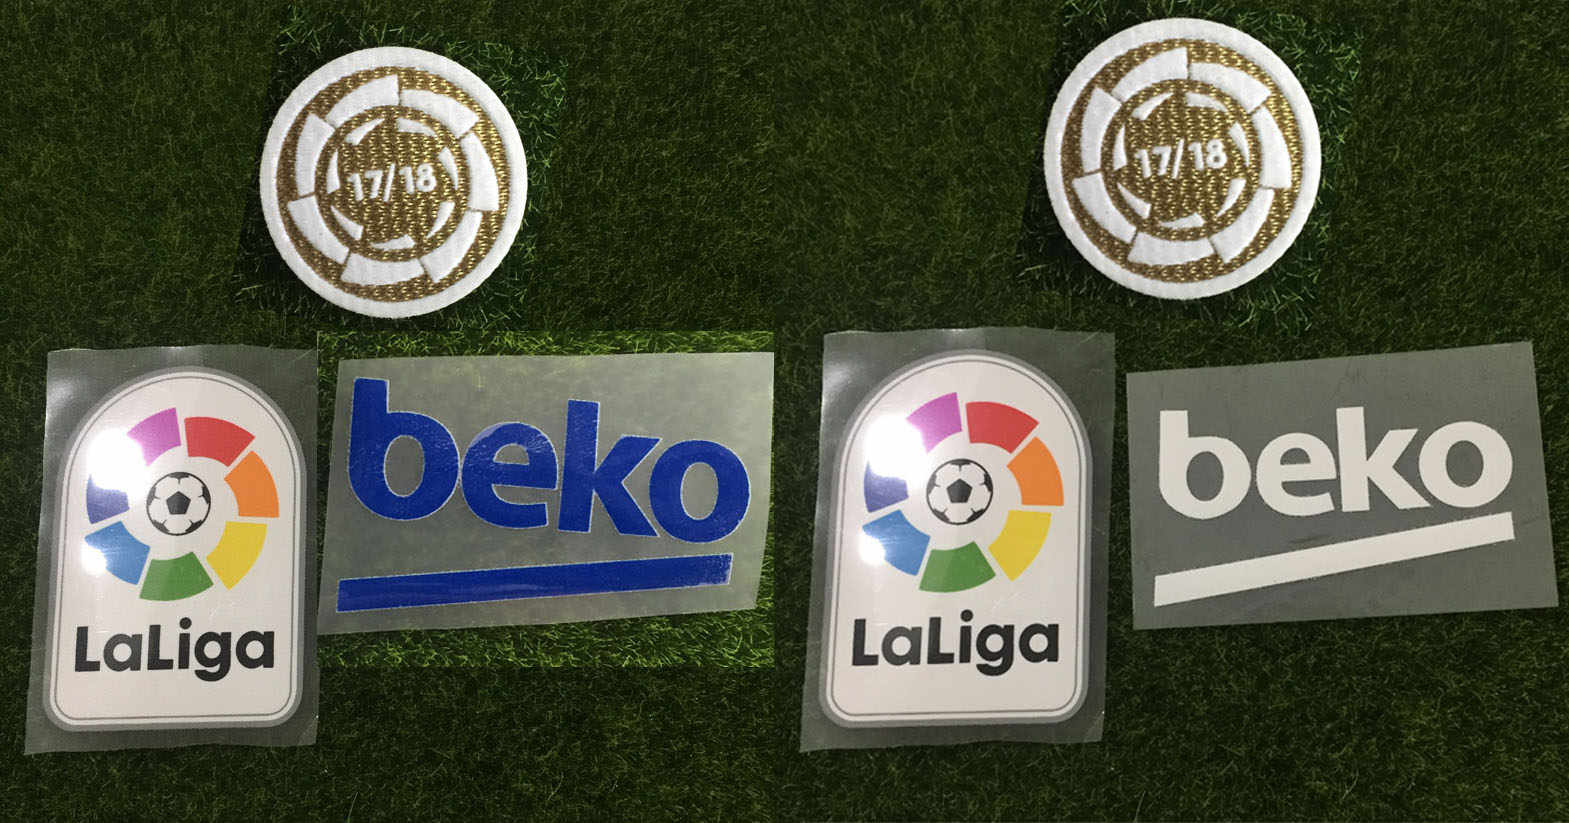 2019 La Liga Champions Patch La Liga Lfp Patch En Beko Patch Warmteoverdracht Badge